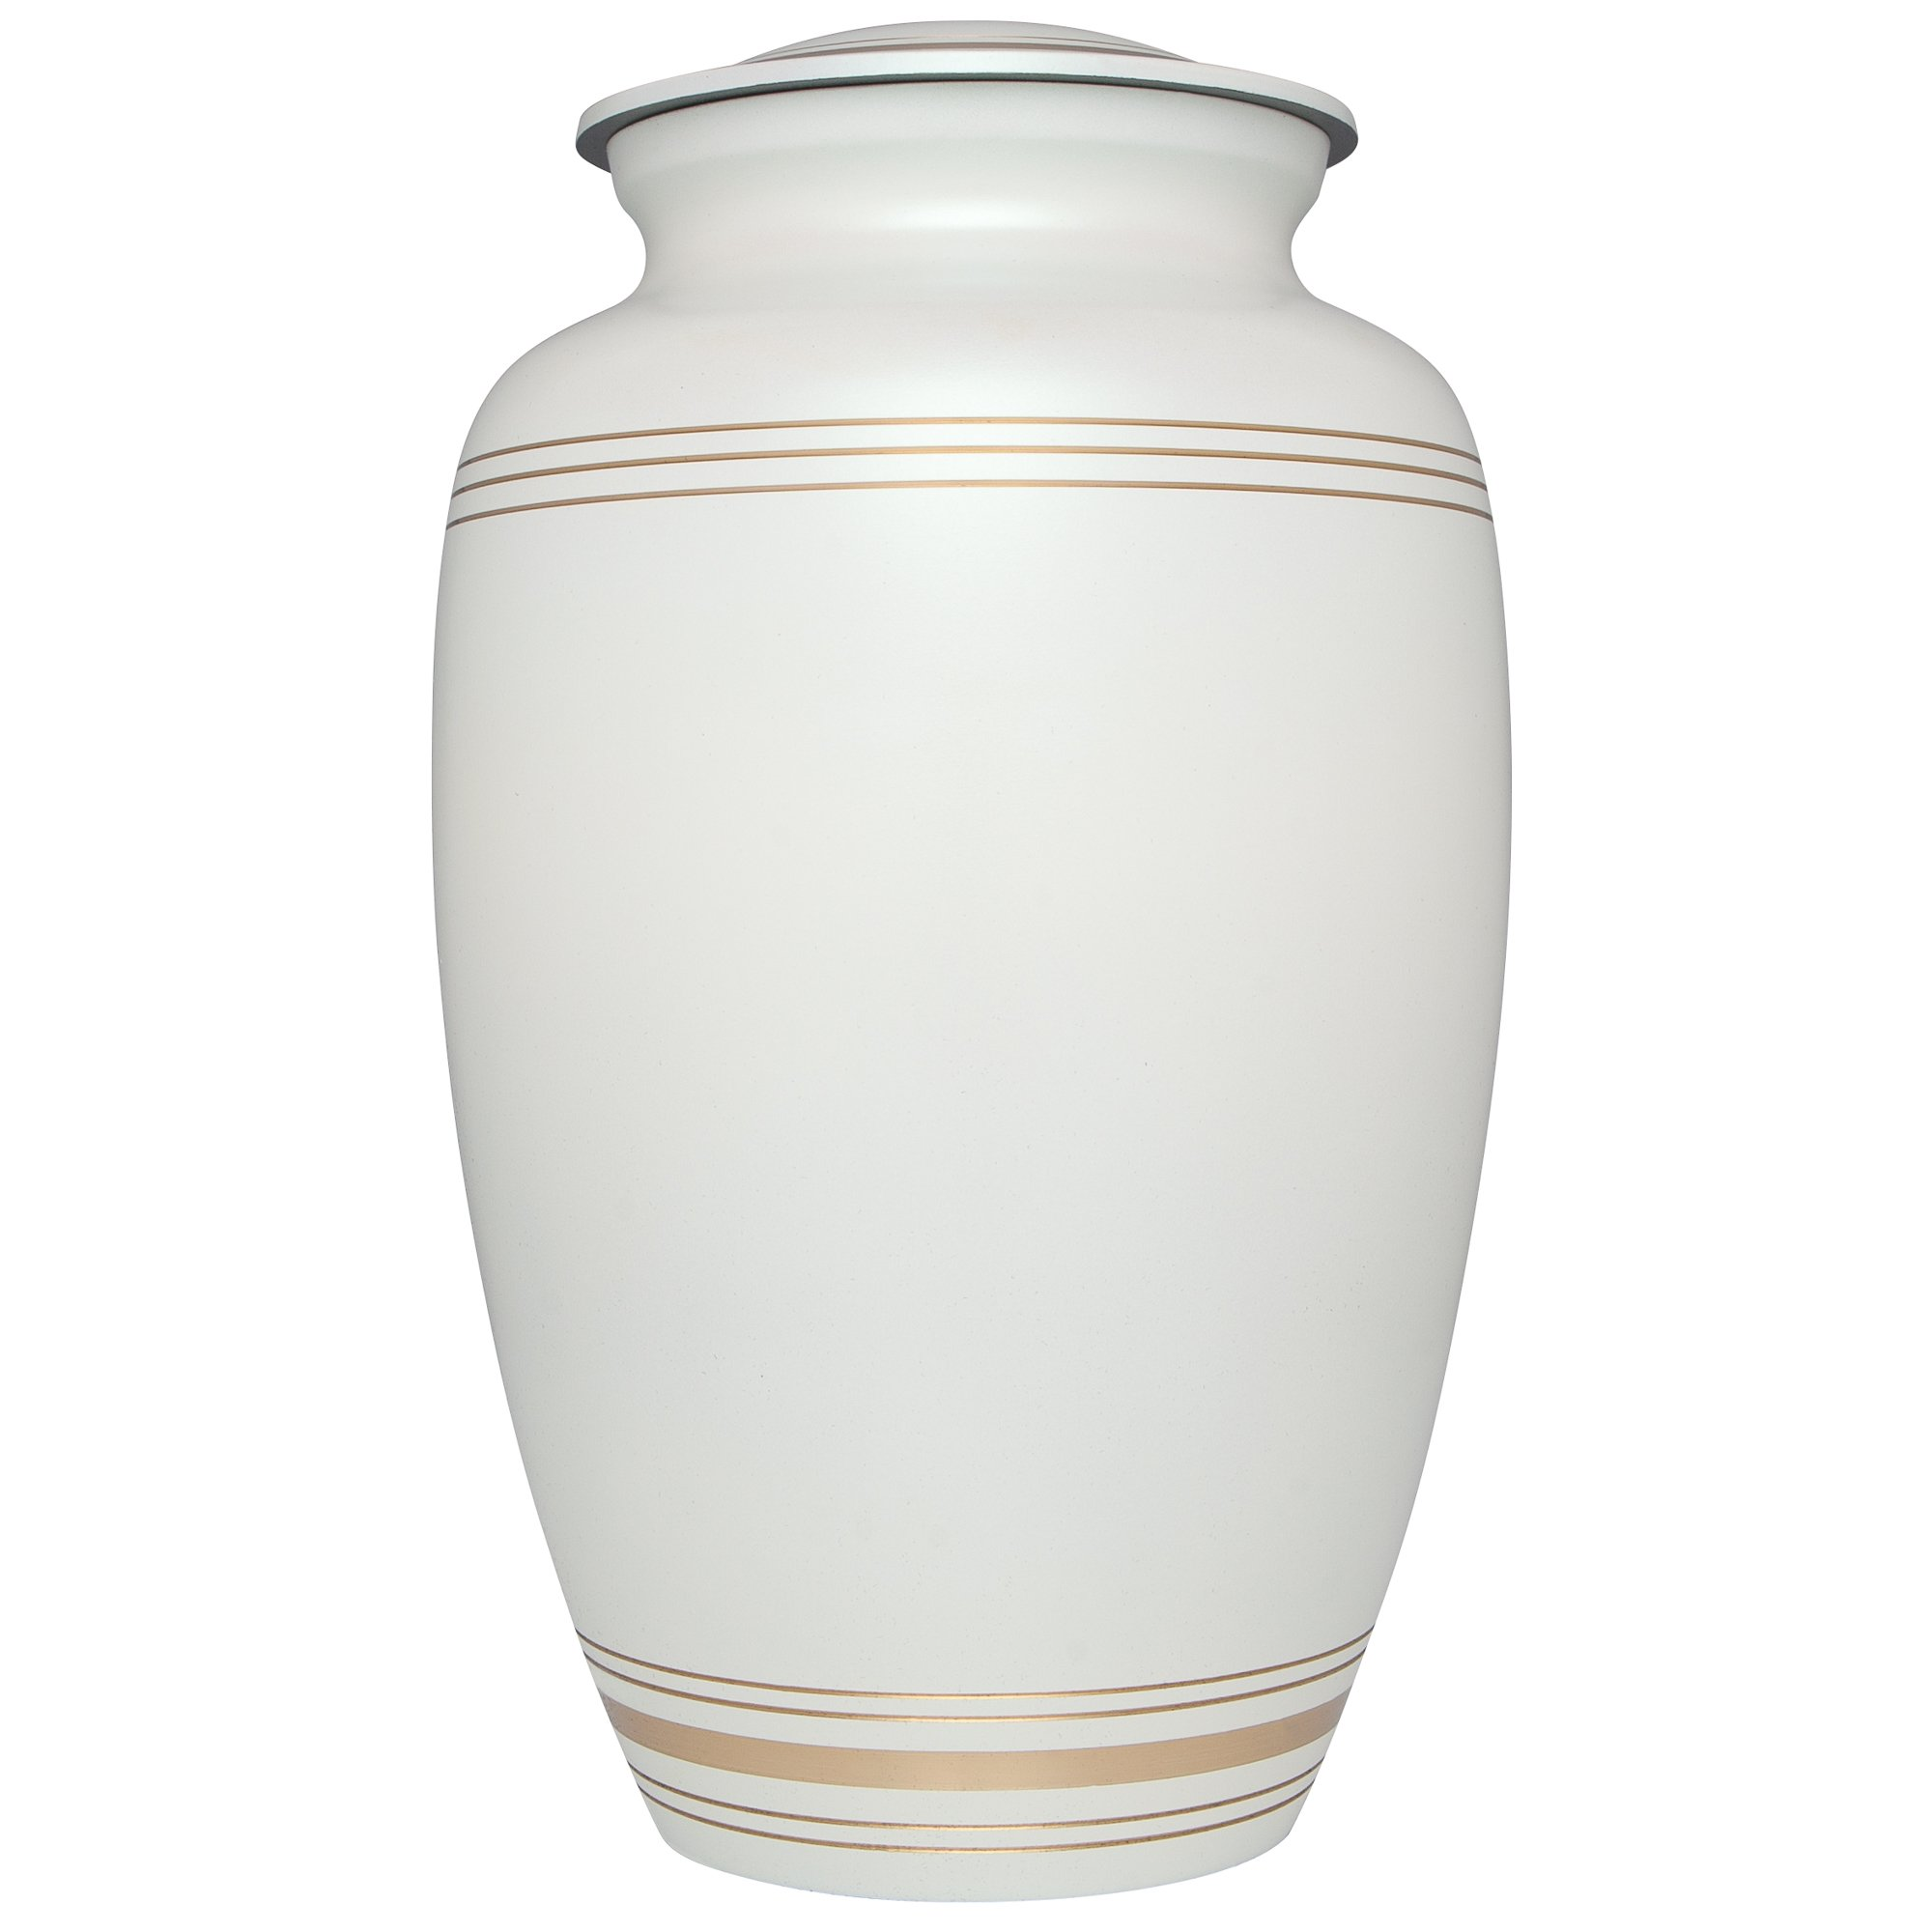 White Funeral Urn by Liliane Memorials - Cremation Urn for Human Ashes - Hand Made in Brass - Suitable for Cemetery Burial or Niche - Fits Remains of Adults up to 200 lbs - Classic Model